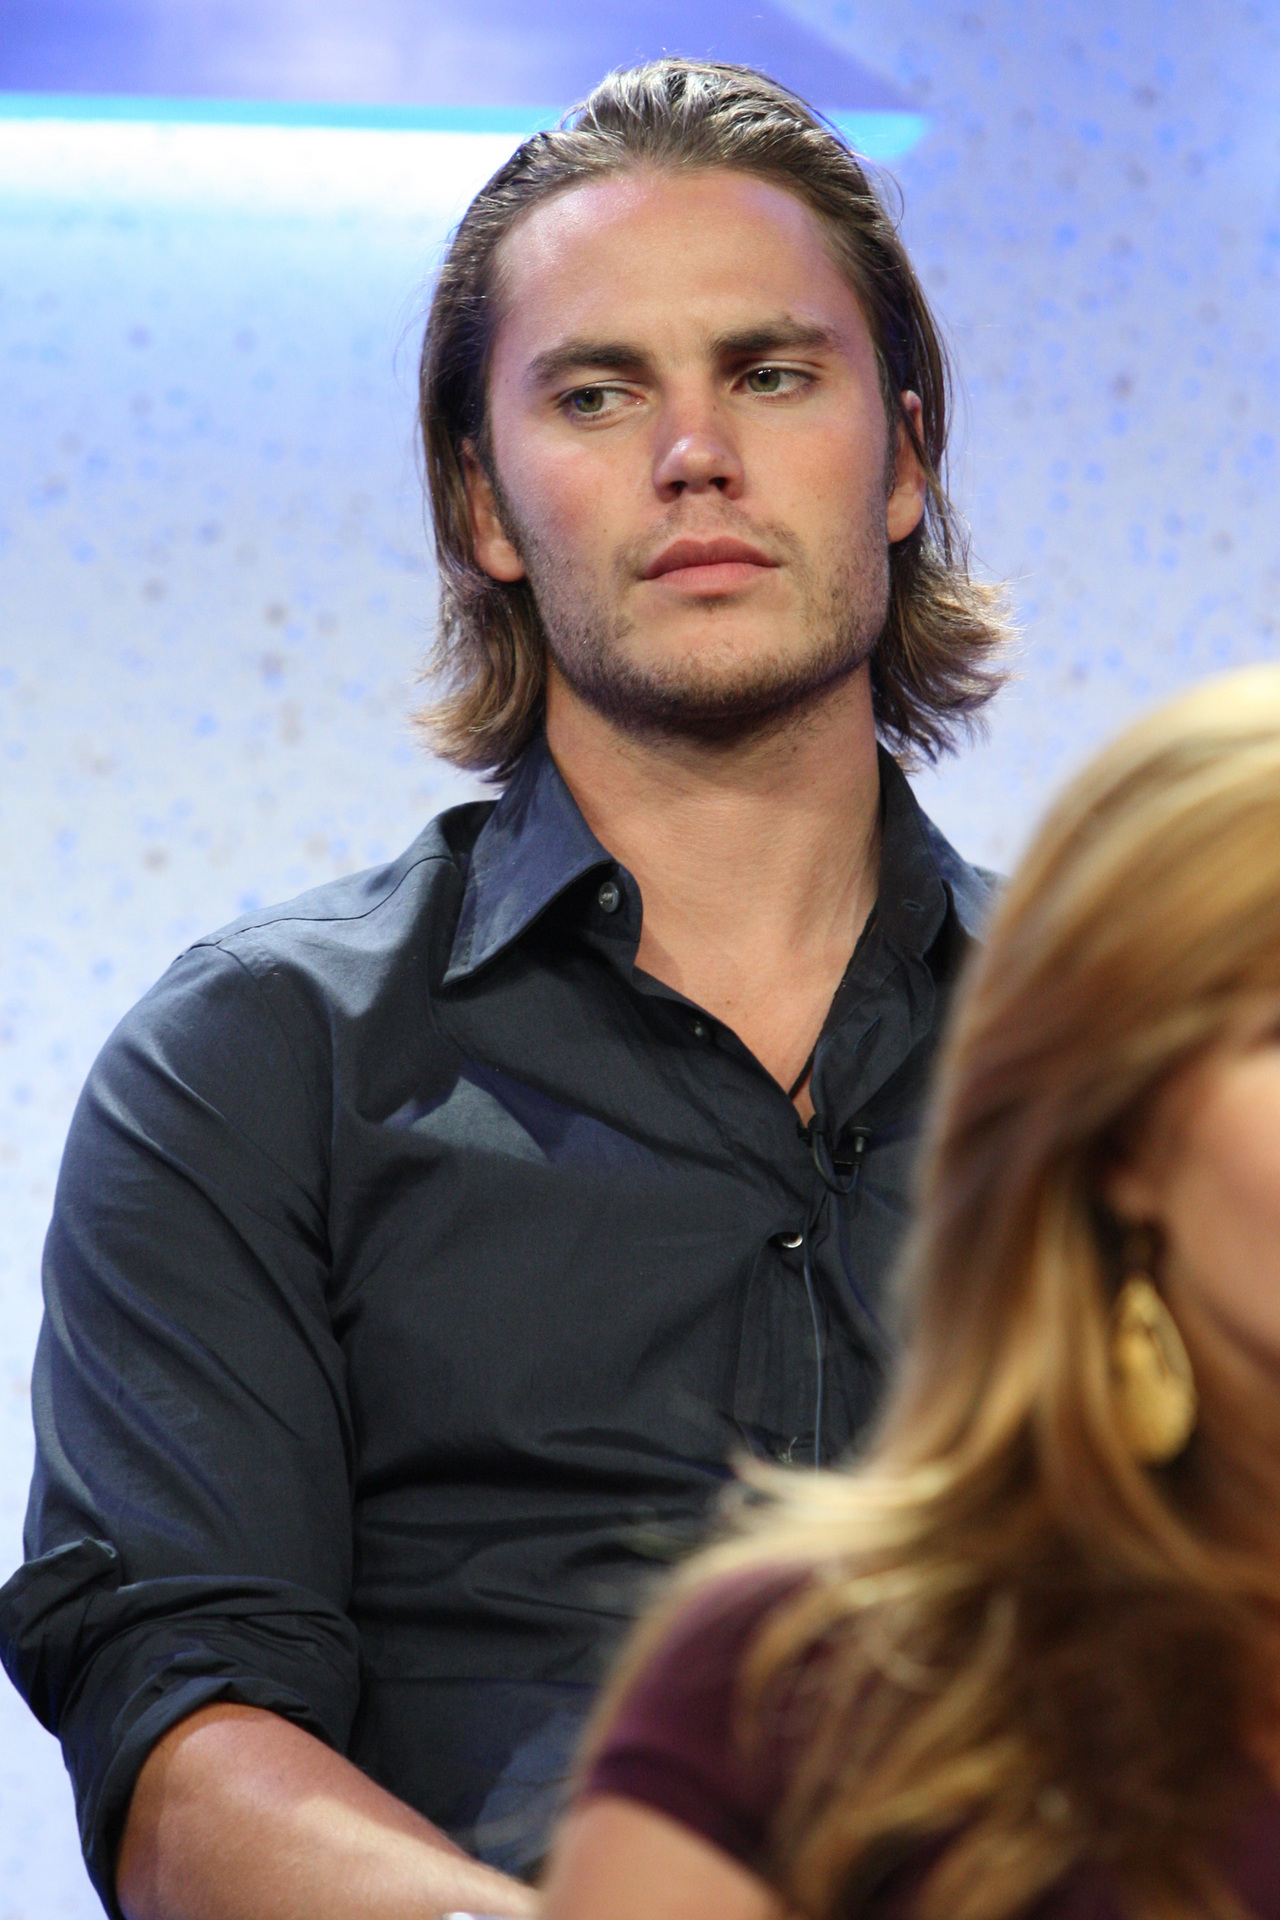 """taylor kitsch dating jessica white Taylor kitsch is a canadian actor and model with an impressive net worth of $12 million he is best known for his appearances in movies like """"x-men origins."""